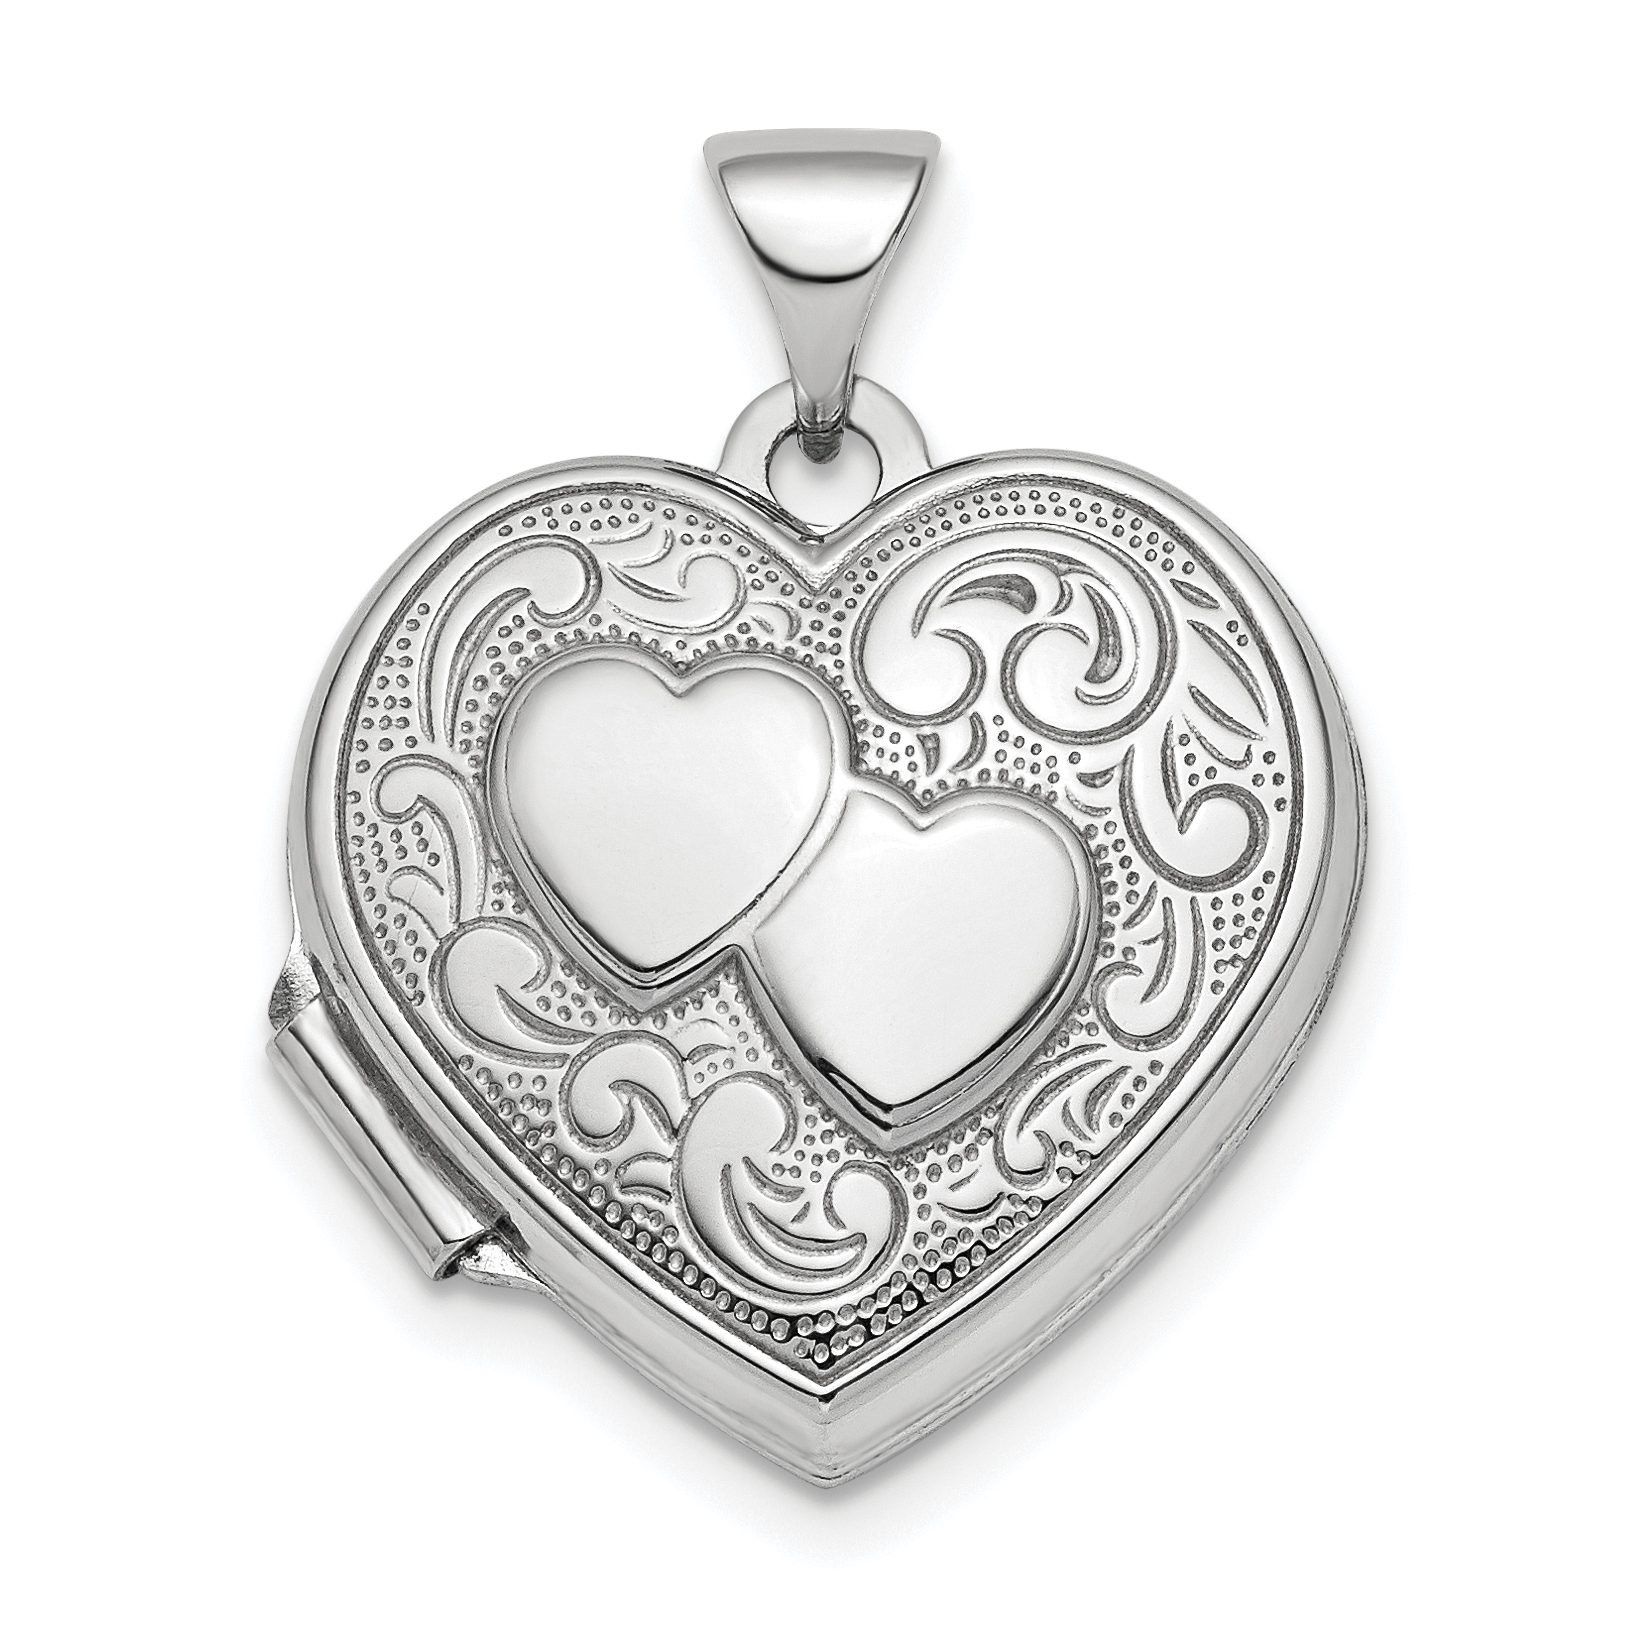 pmr open wing lockets feather heart inch jewelry angel locket pendant bling sterling necklace silver